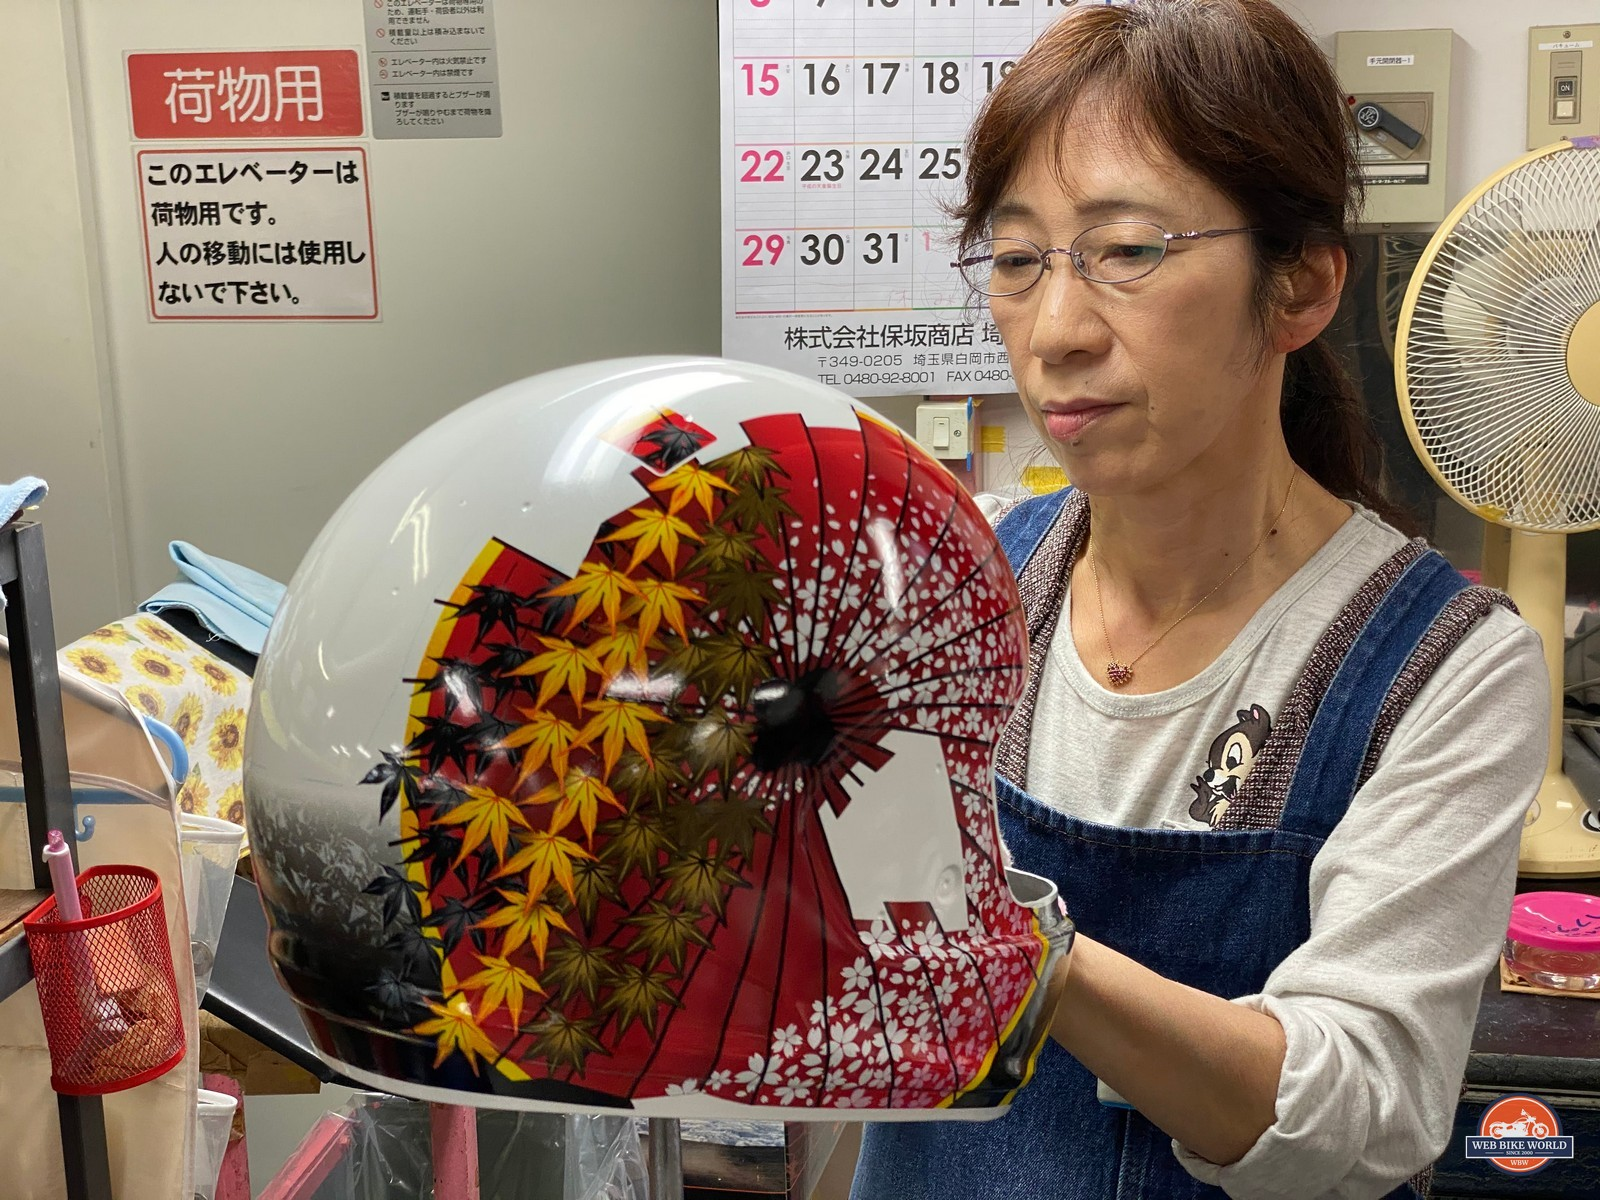 Applying decals to helmets at the Arai factory.